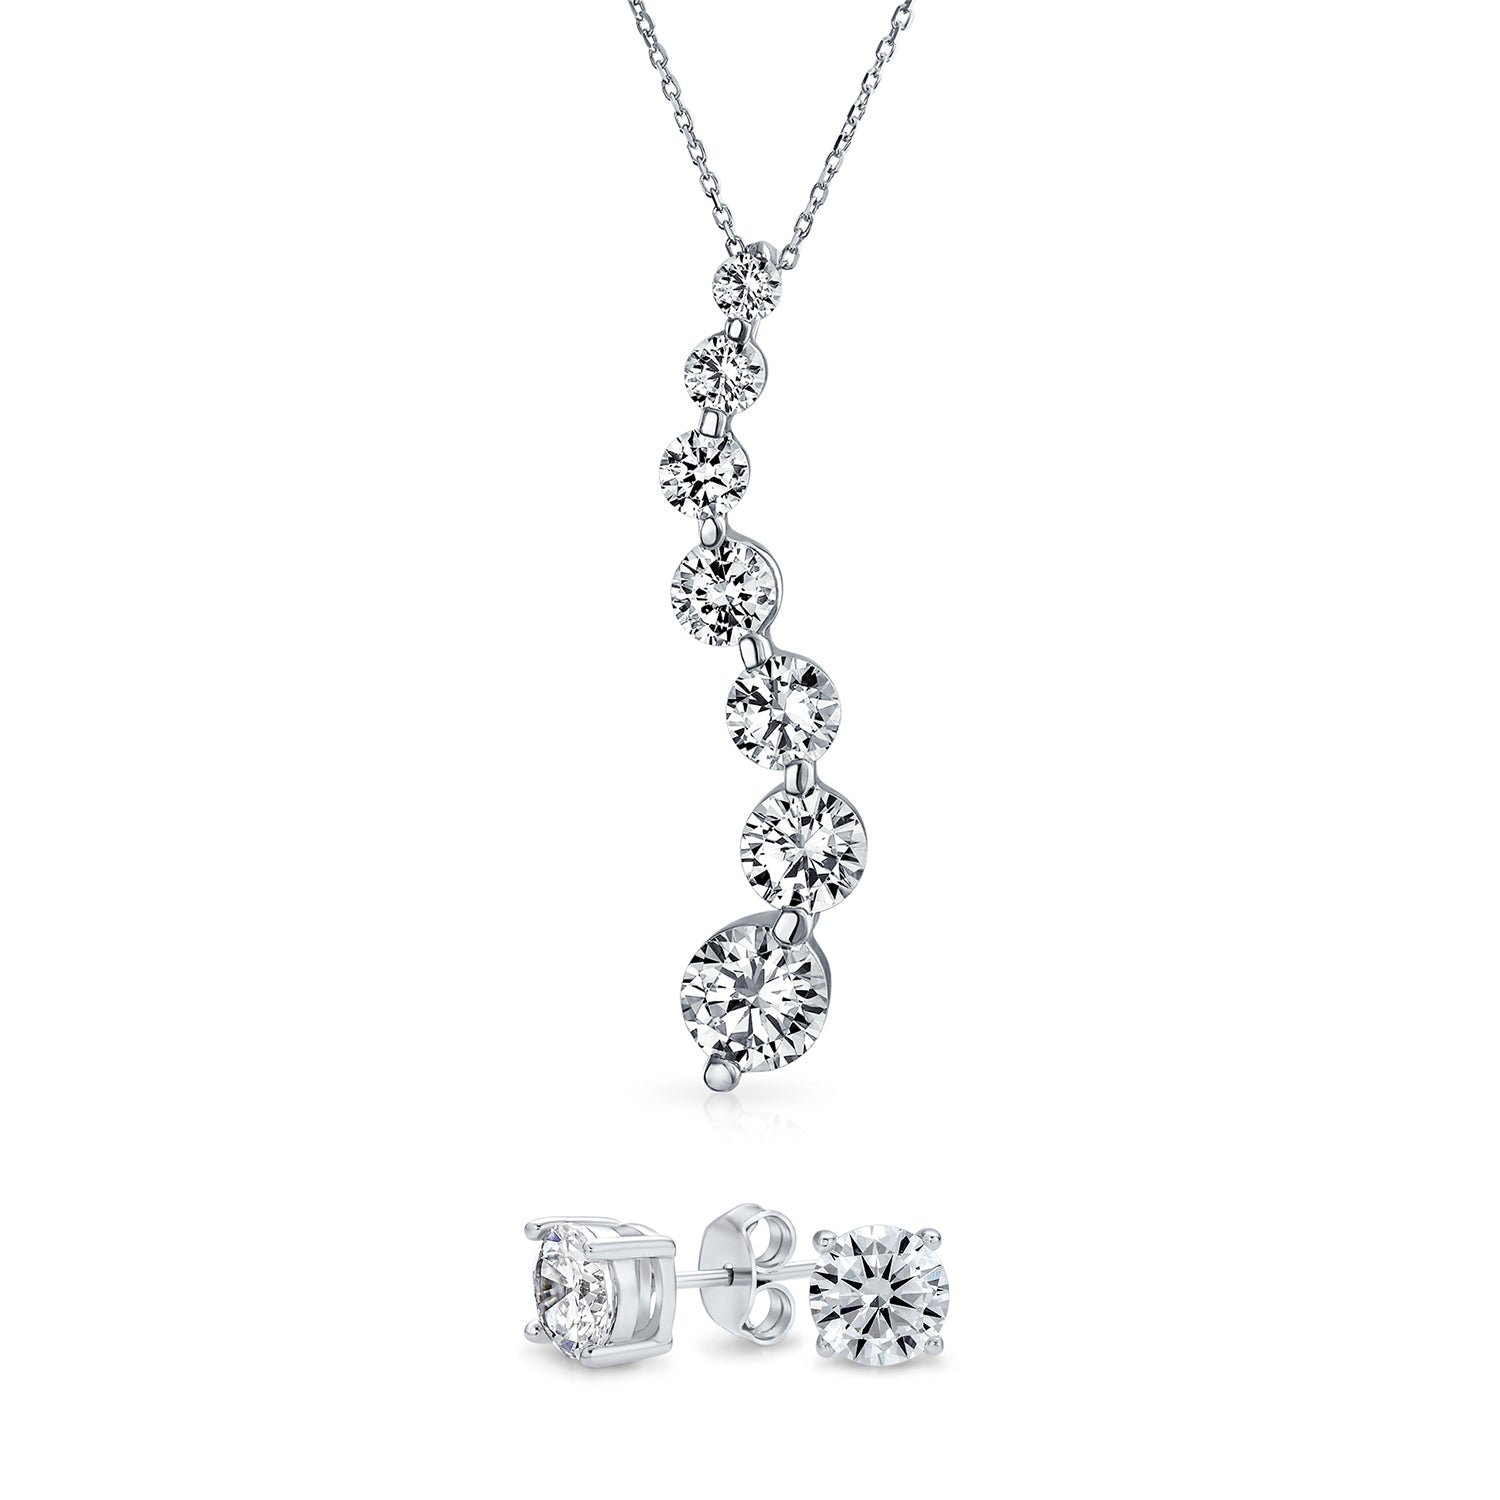 Solid 925 Sterling Silver Red and Clear CZ Cubic Zirconia Pendant Charm